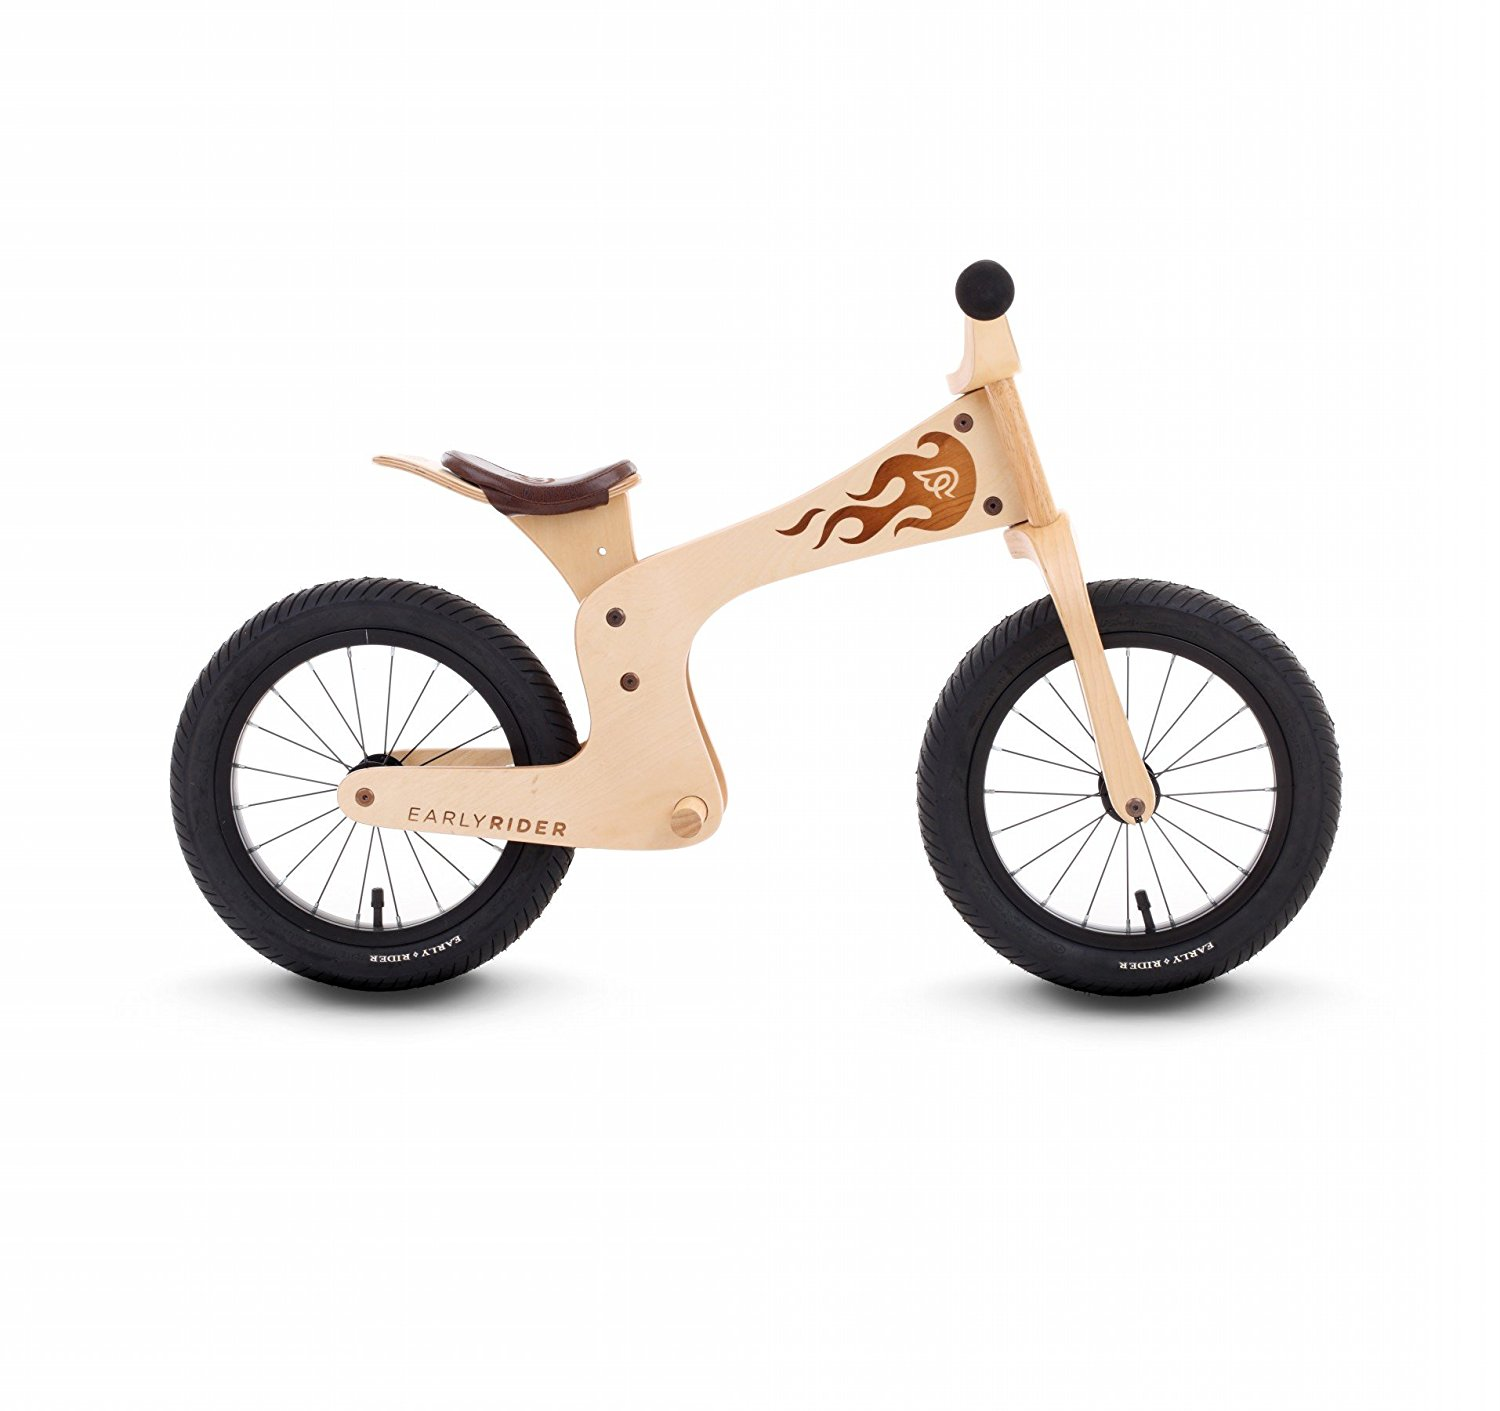 Early Rider Evo Birch Balance Bike - Brown, Age 3-5 Years